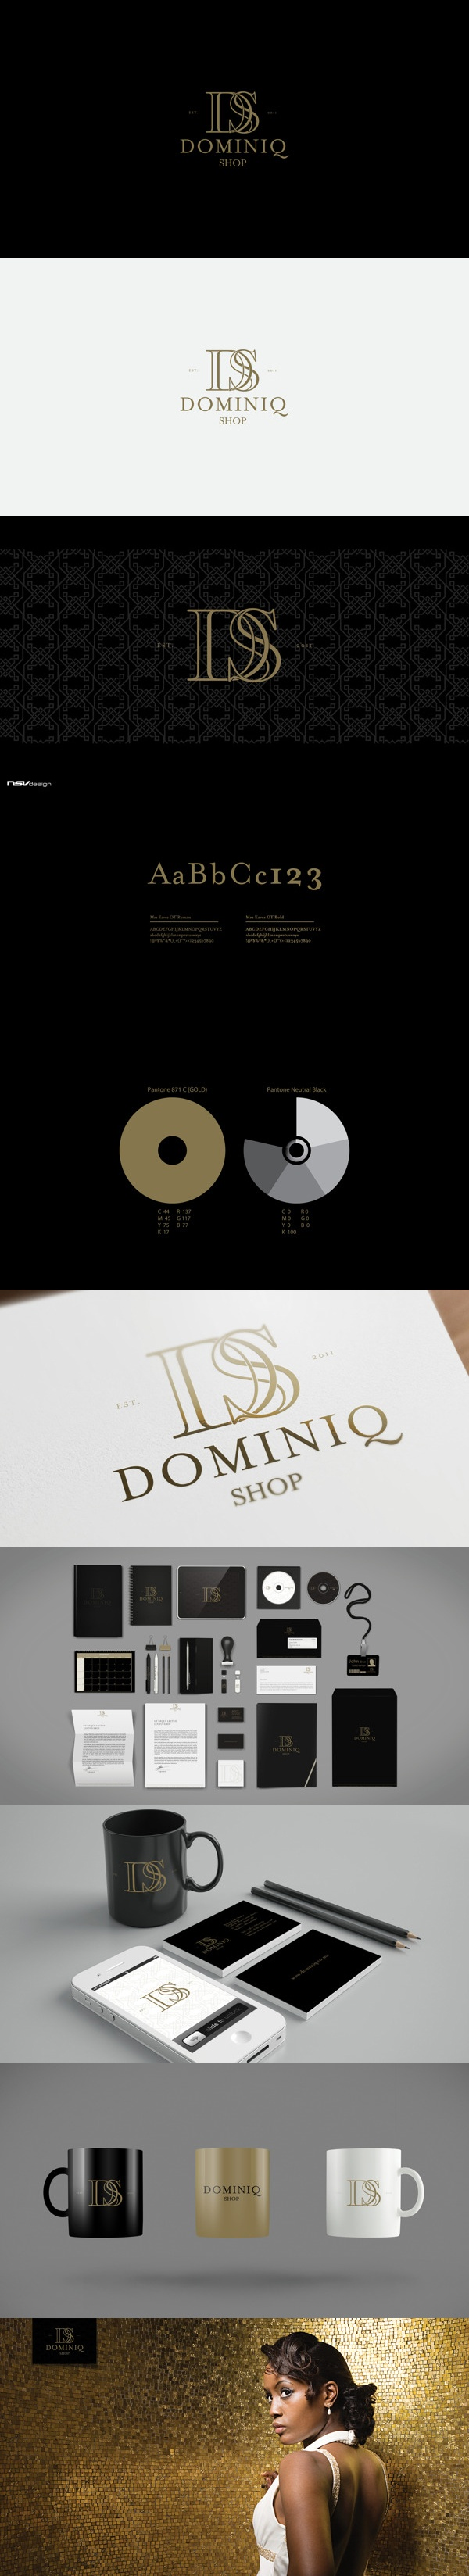 This is the corporate identity commissioned for Dominiq Shop which is sells mainly high quality dresses for all occasions. The identity should have a classical look, yet modern and transmit the sense of quality. It should appeal for all women both old and young looking for ready made dresses of high quality and design.